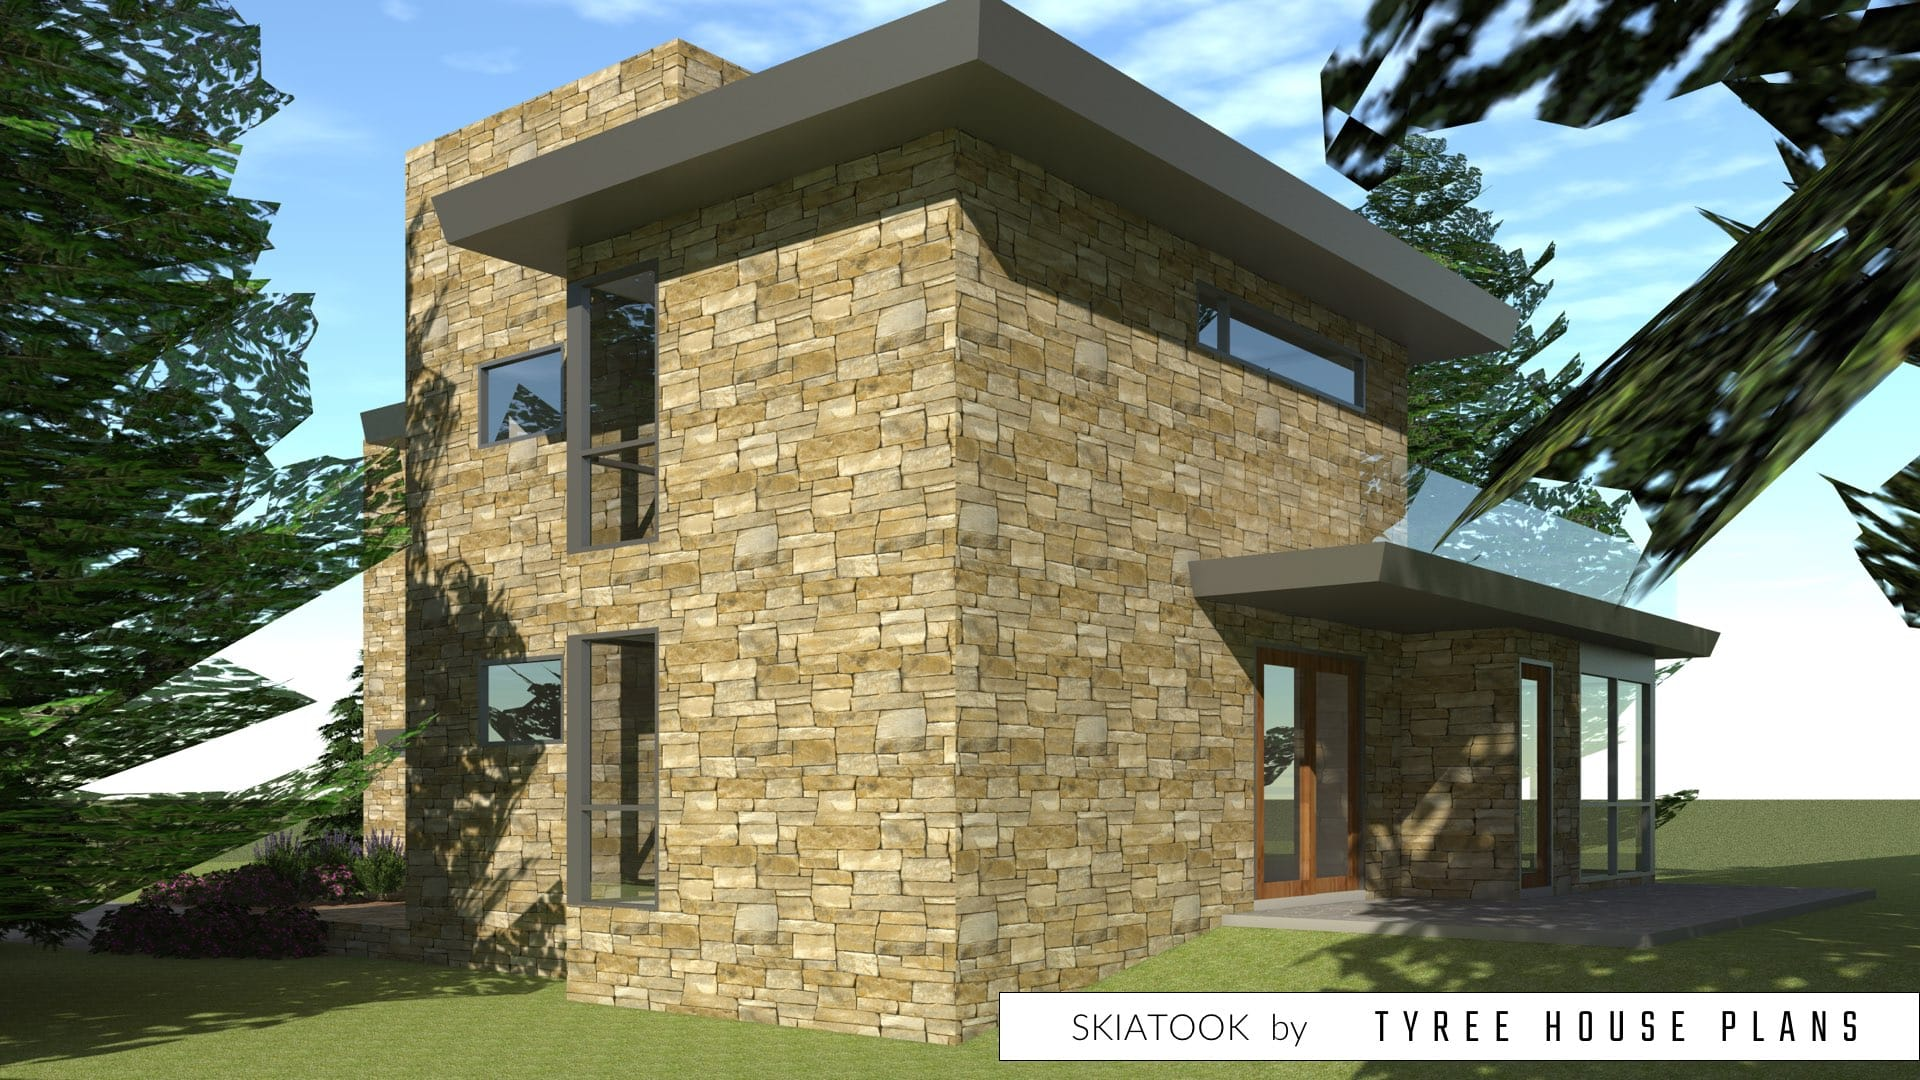 Skiatook House Plan by Tyree House Plans